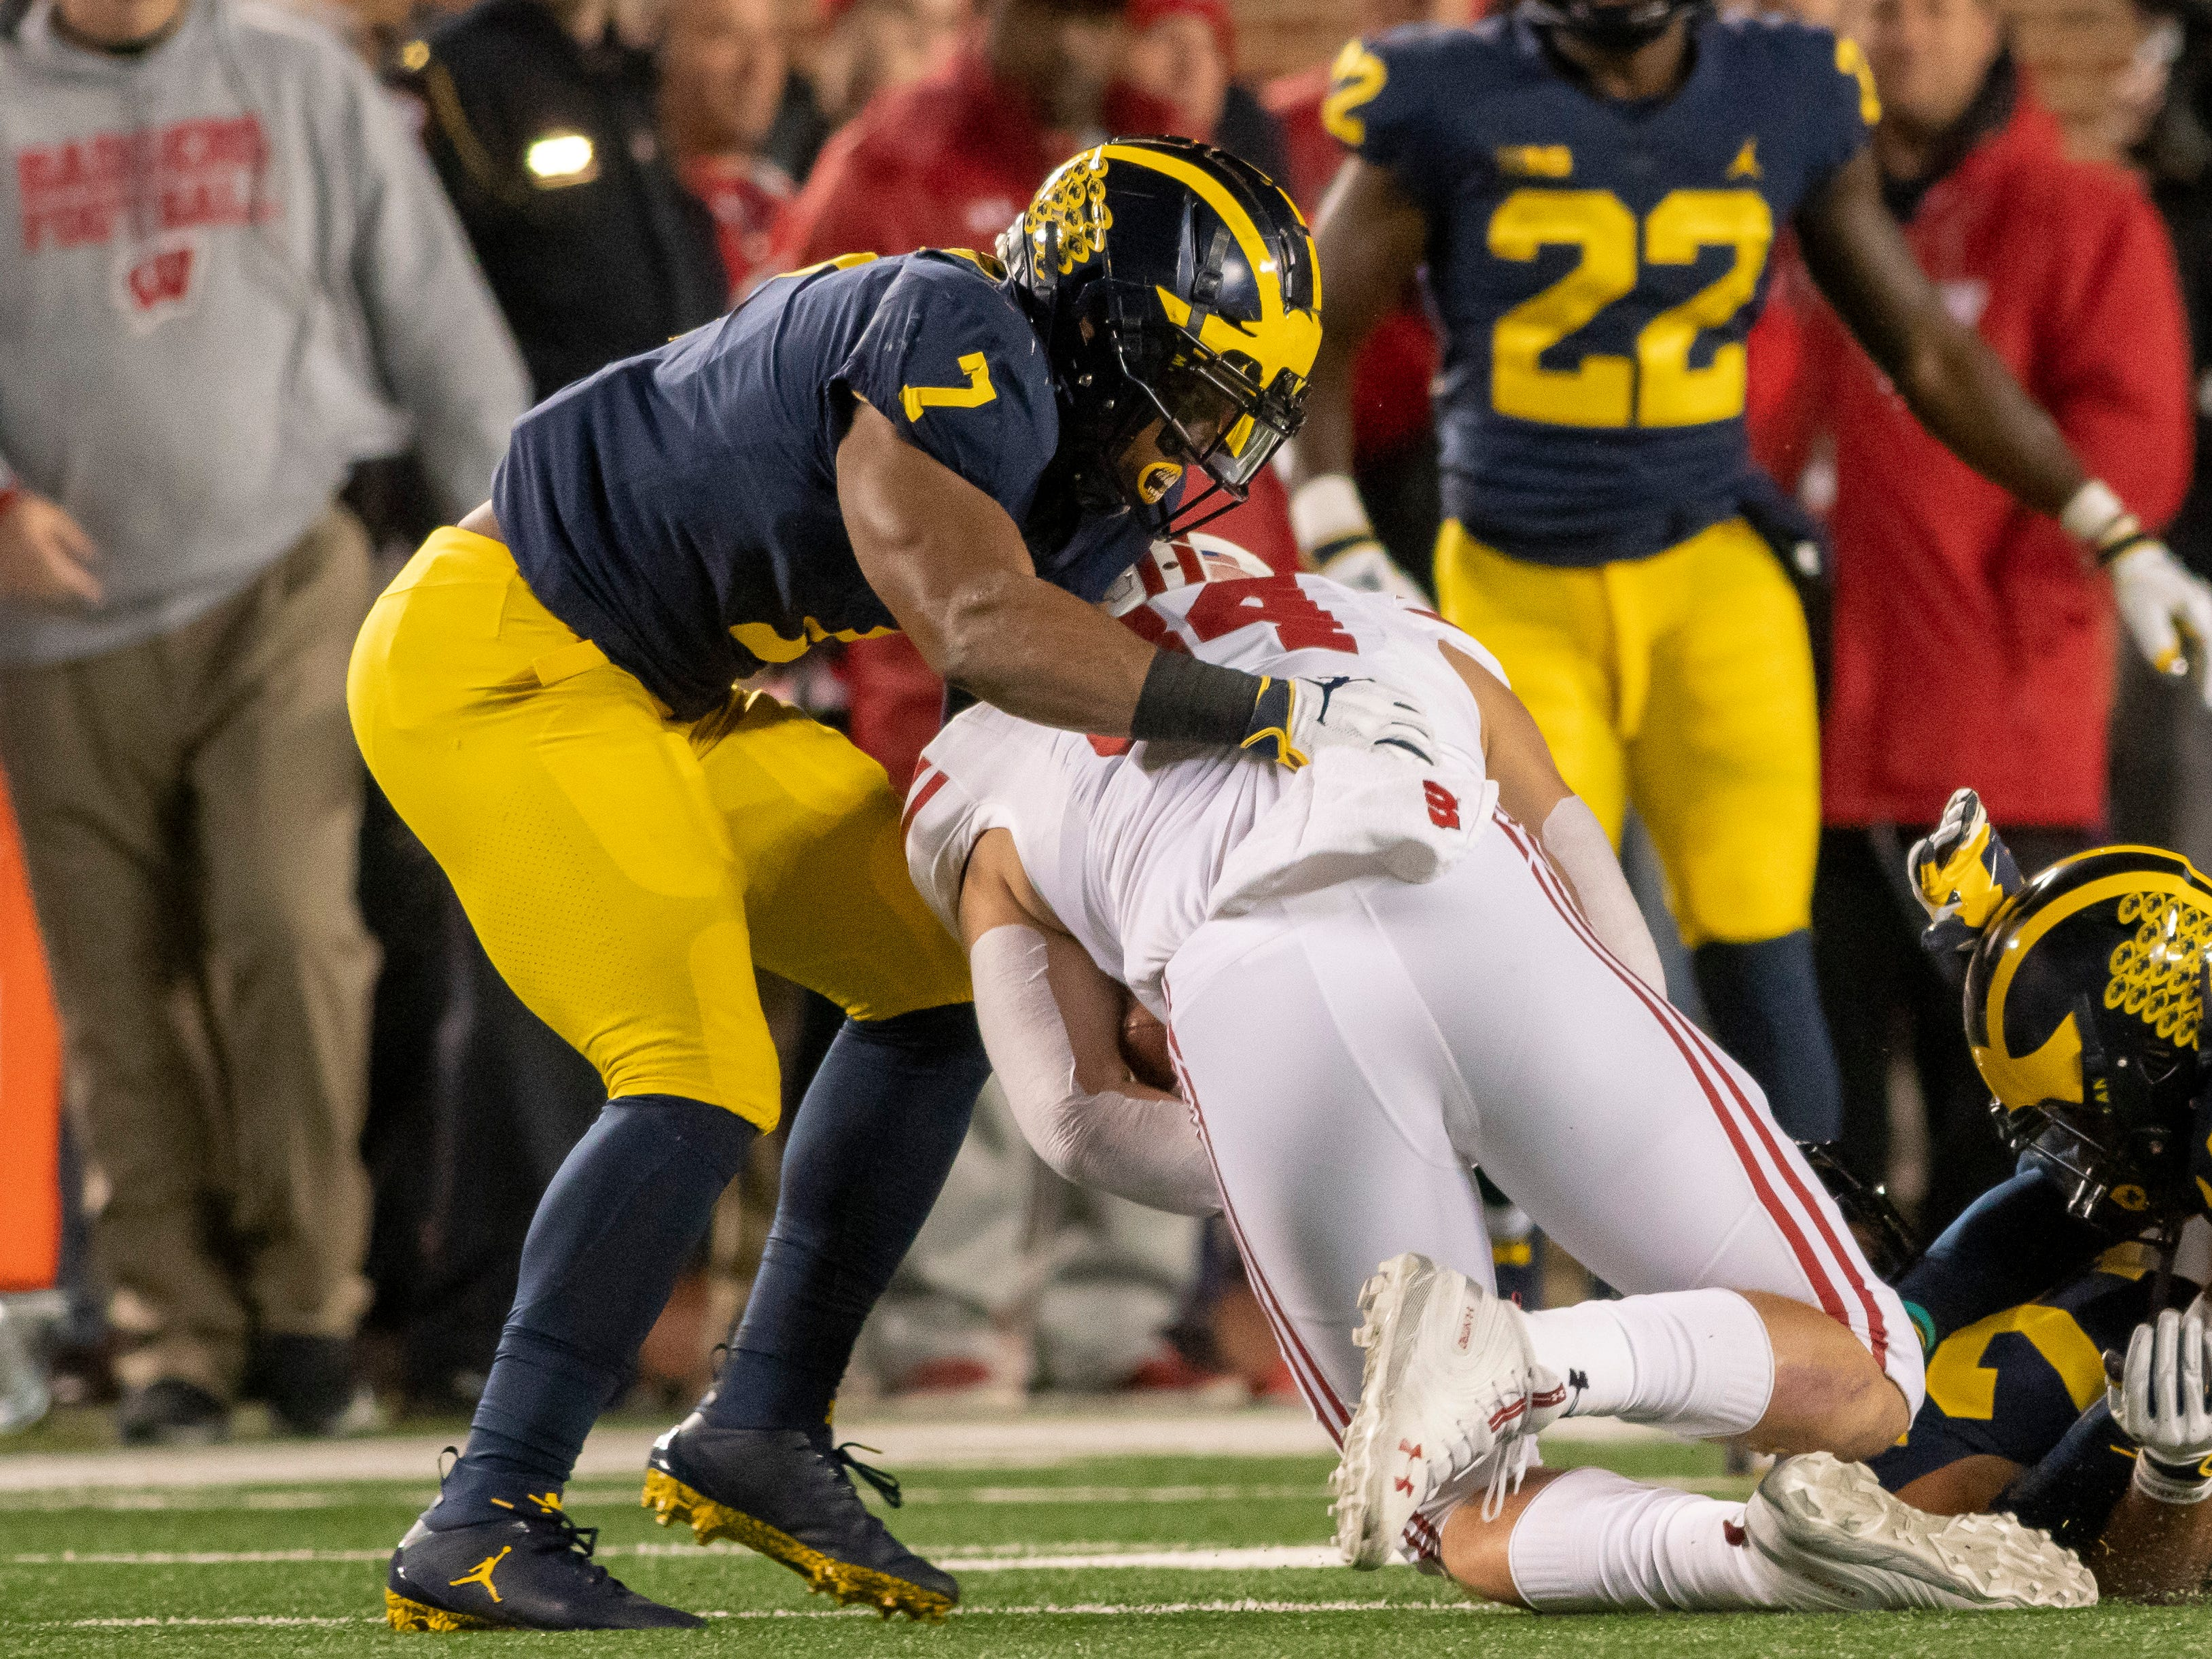 STRONGSIDE LINEBACKER: Khaleke Hudson – Hudson returns for his senior season with the intention of having a big year as a team. He has made 24 starts at viper and last season was All-Big Ten honorable mention. He had 44 tackles, including 3.5 for loss and two sacks.